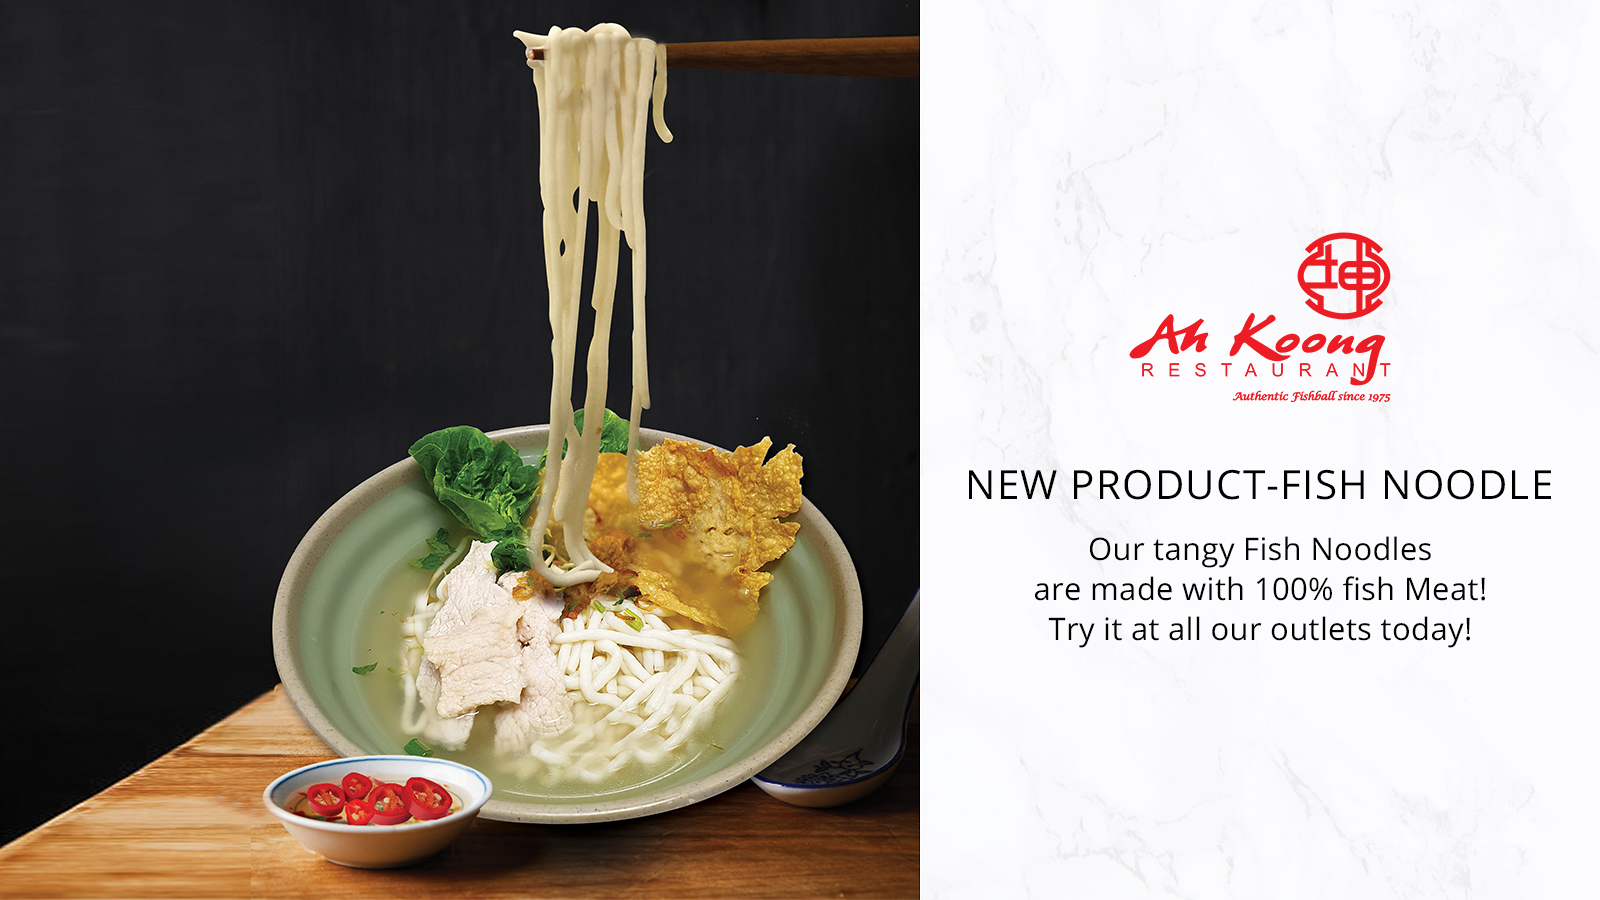 New Product-Fish Noodle